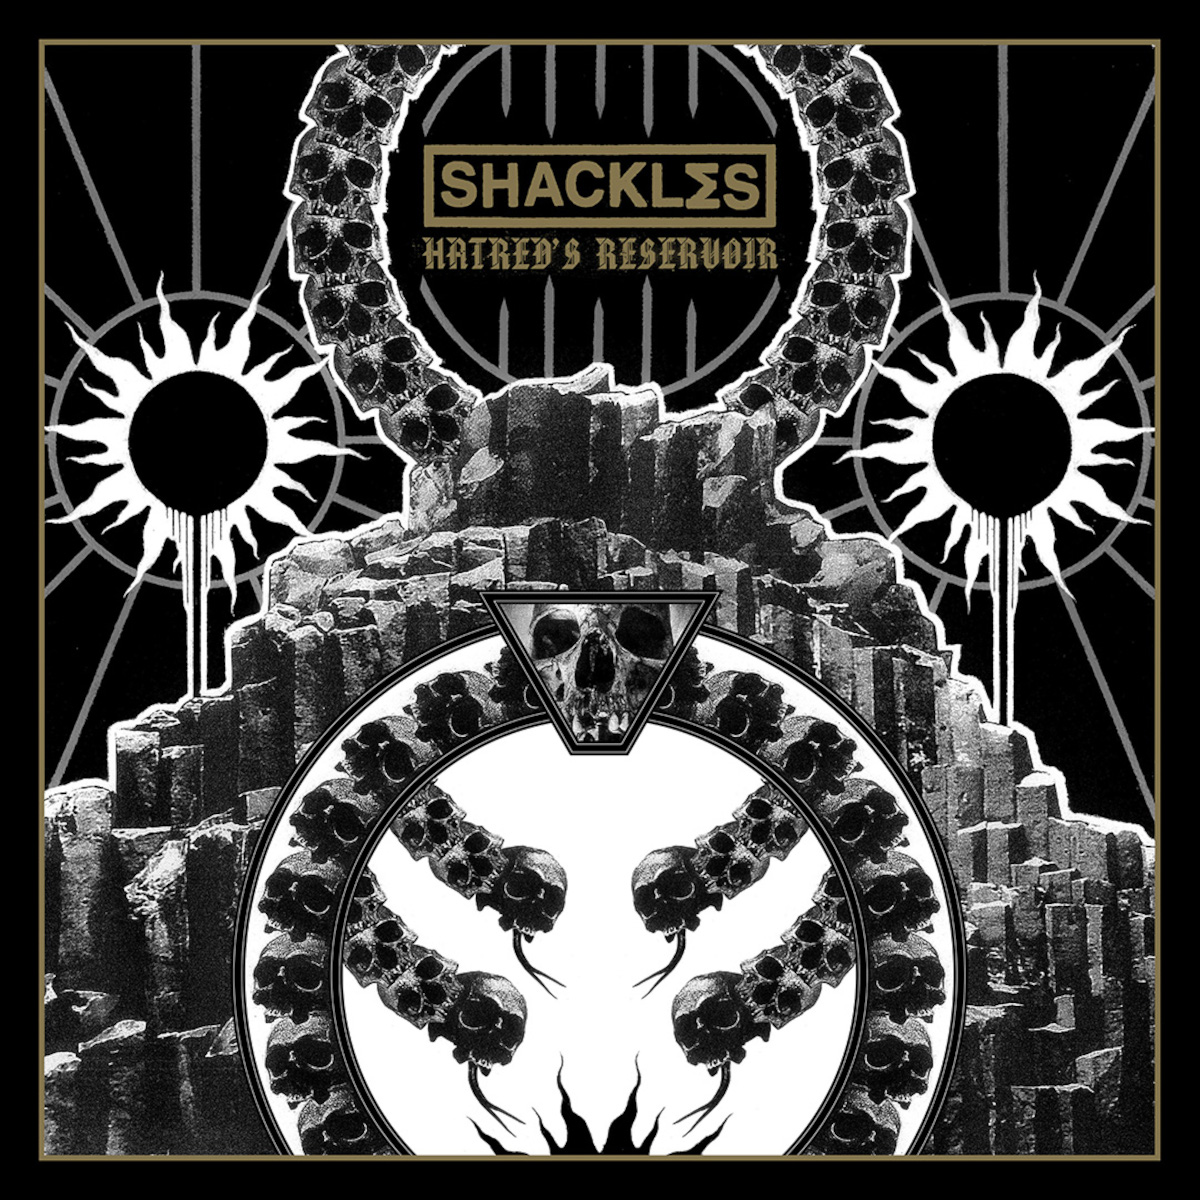 RES174 – Shackles